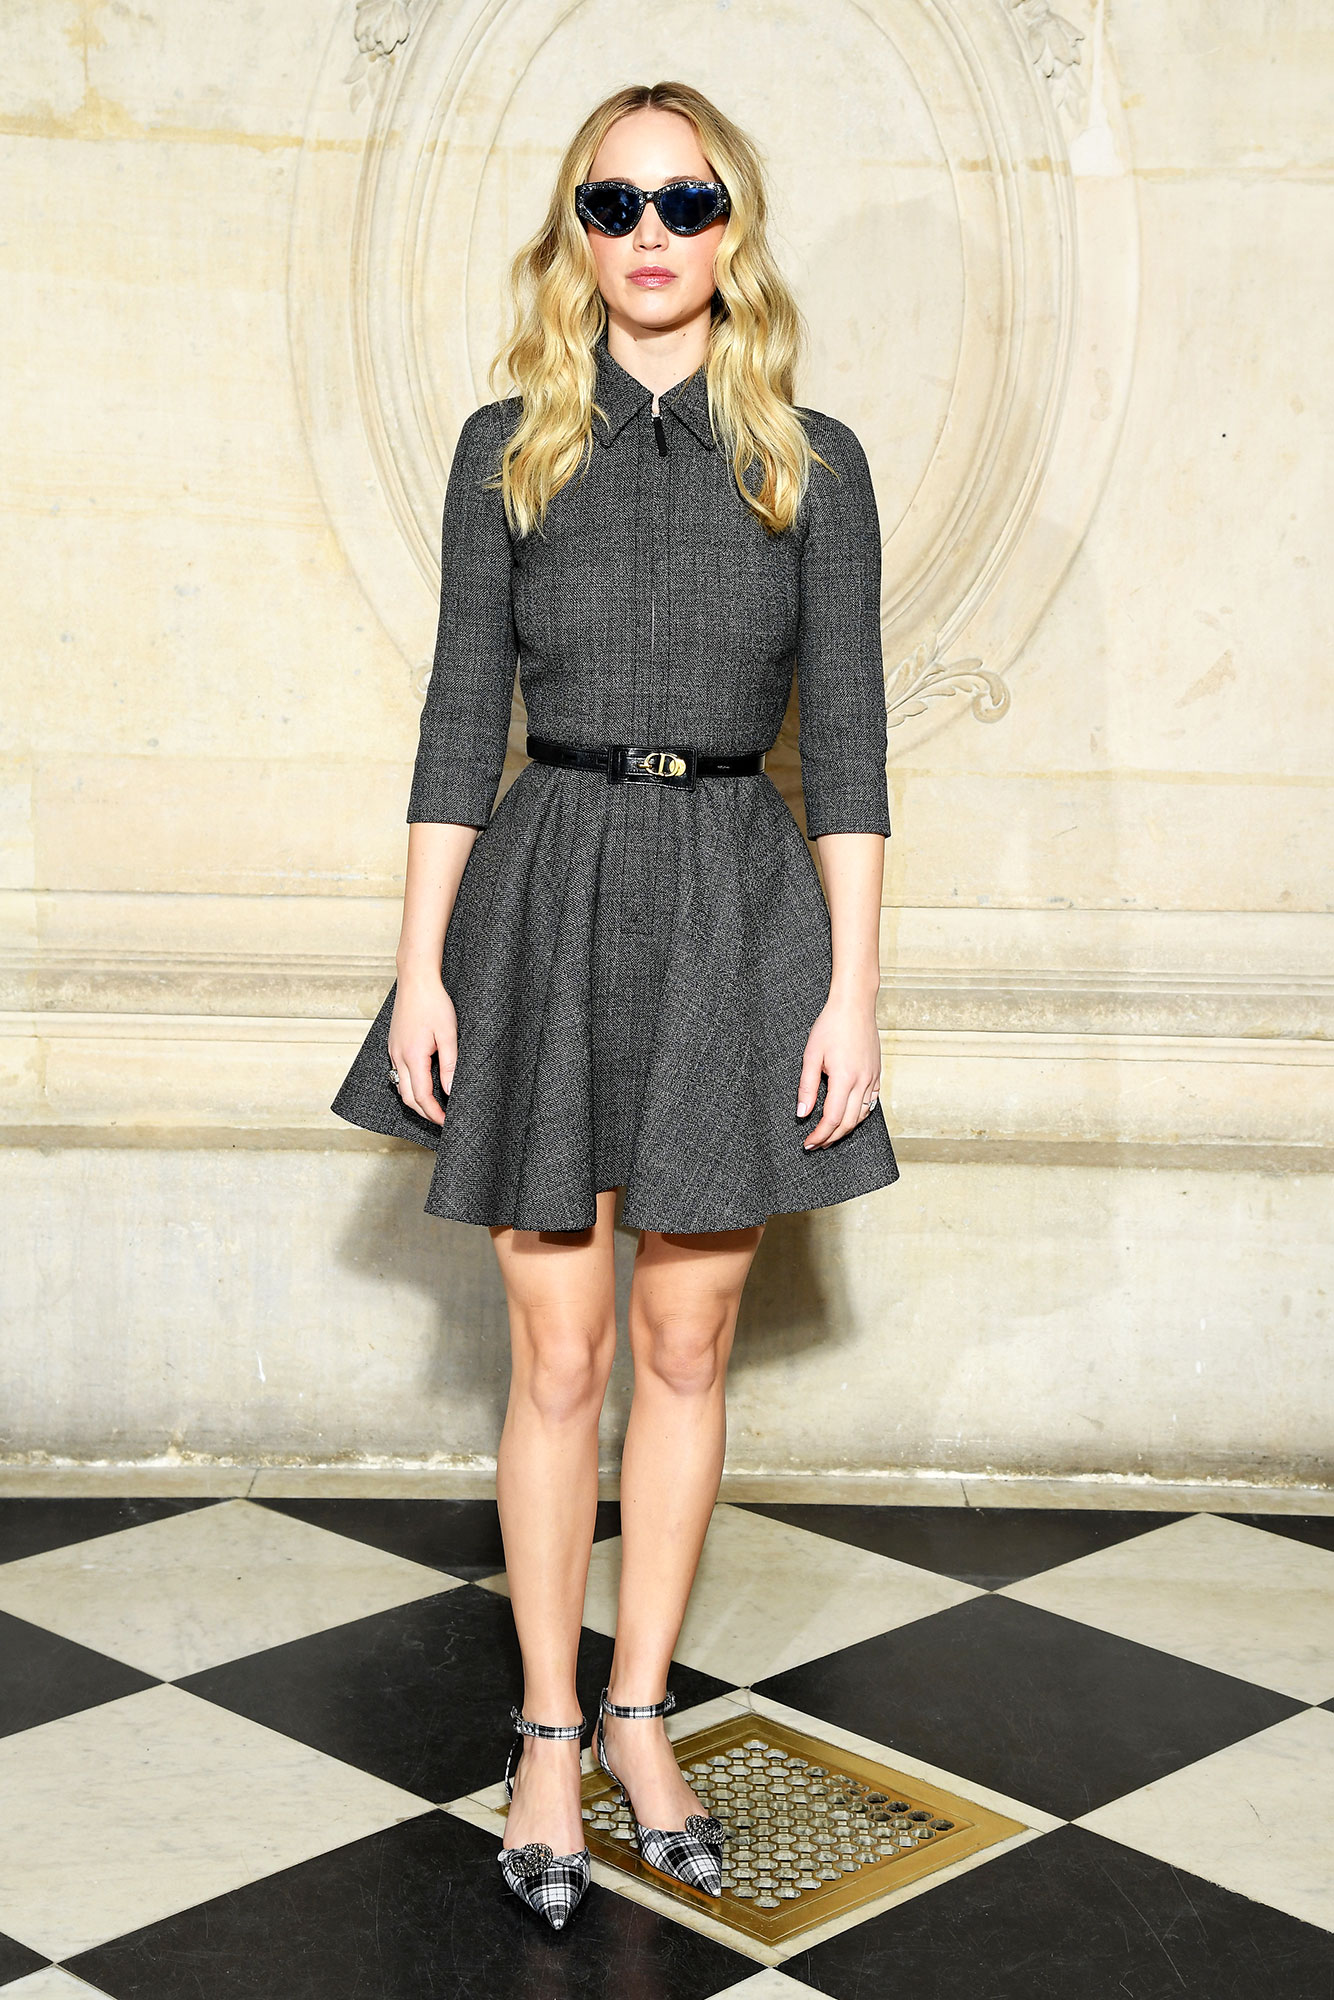 Jennifer Lawrence See the Stars' Street Style at Paris Fashion Week - The newly engaged actress kept things short and sweet in a fit-and-flare minidress and bedazzled shades at the Dior show on Tuesday, February 26.